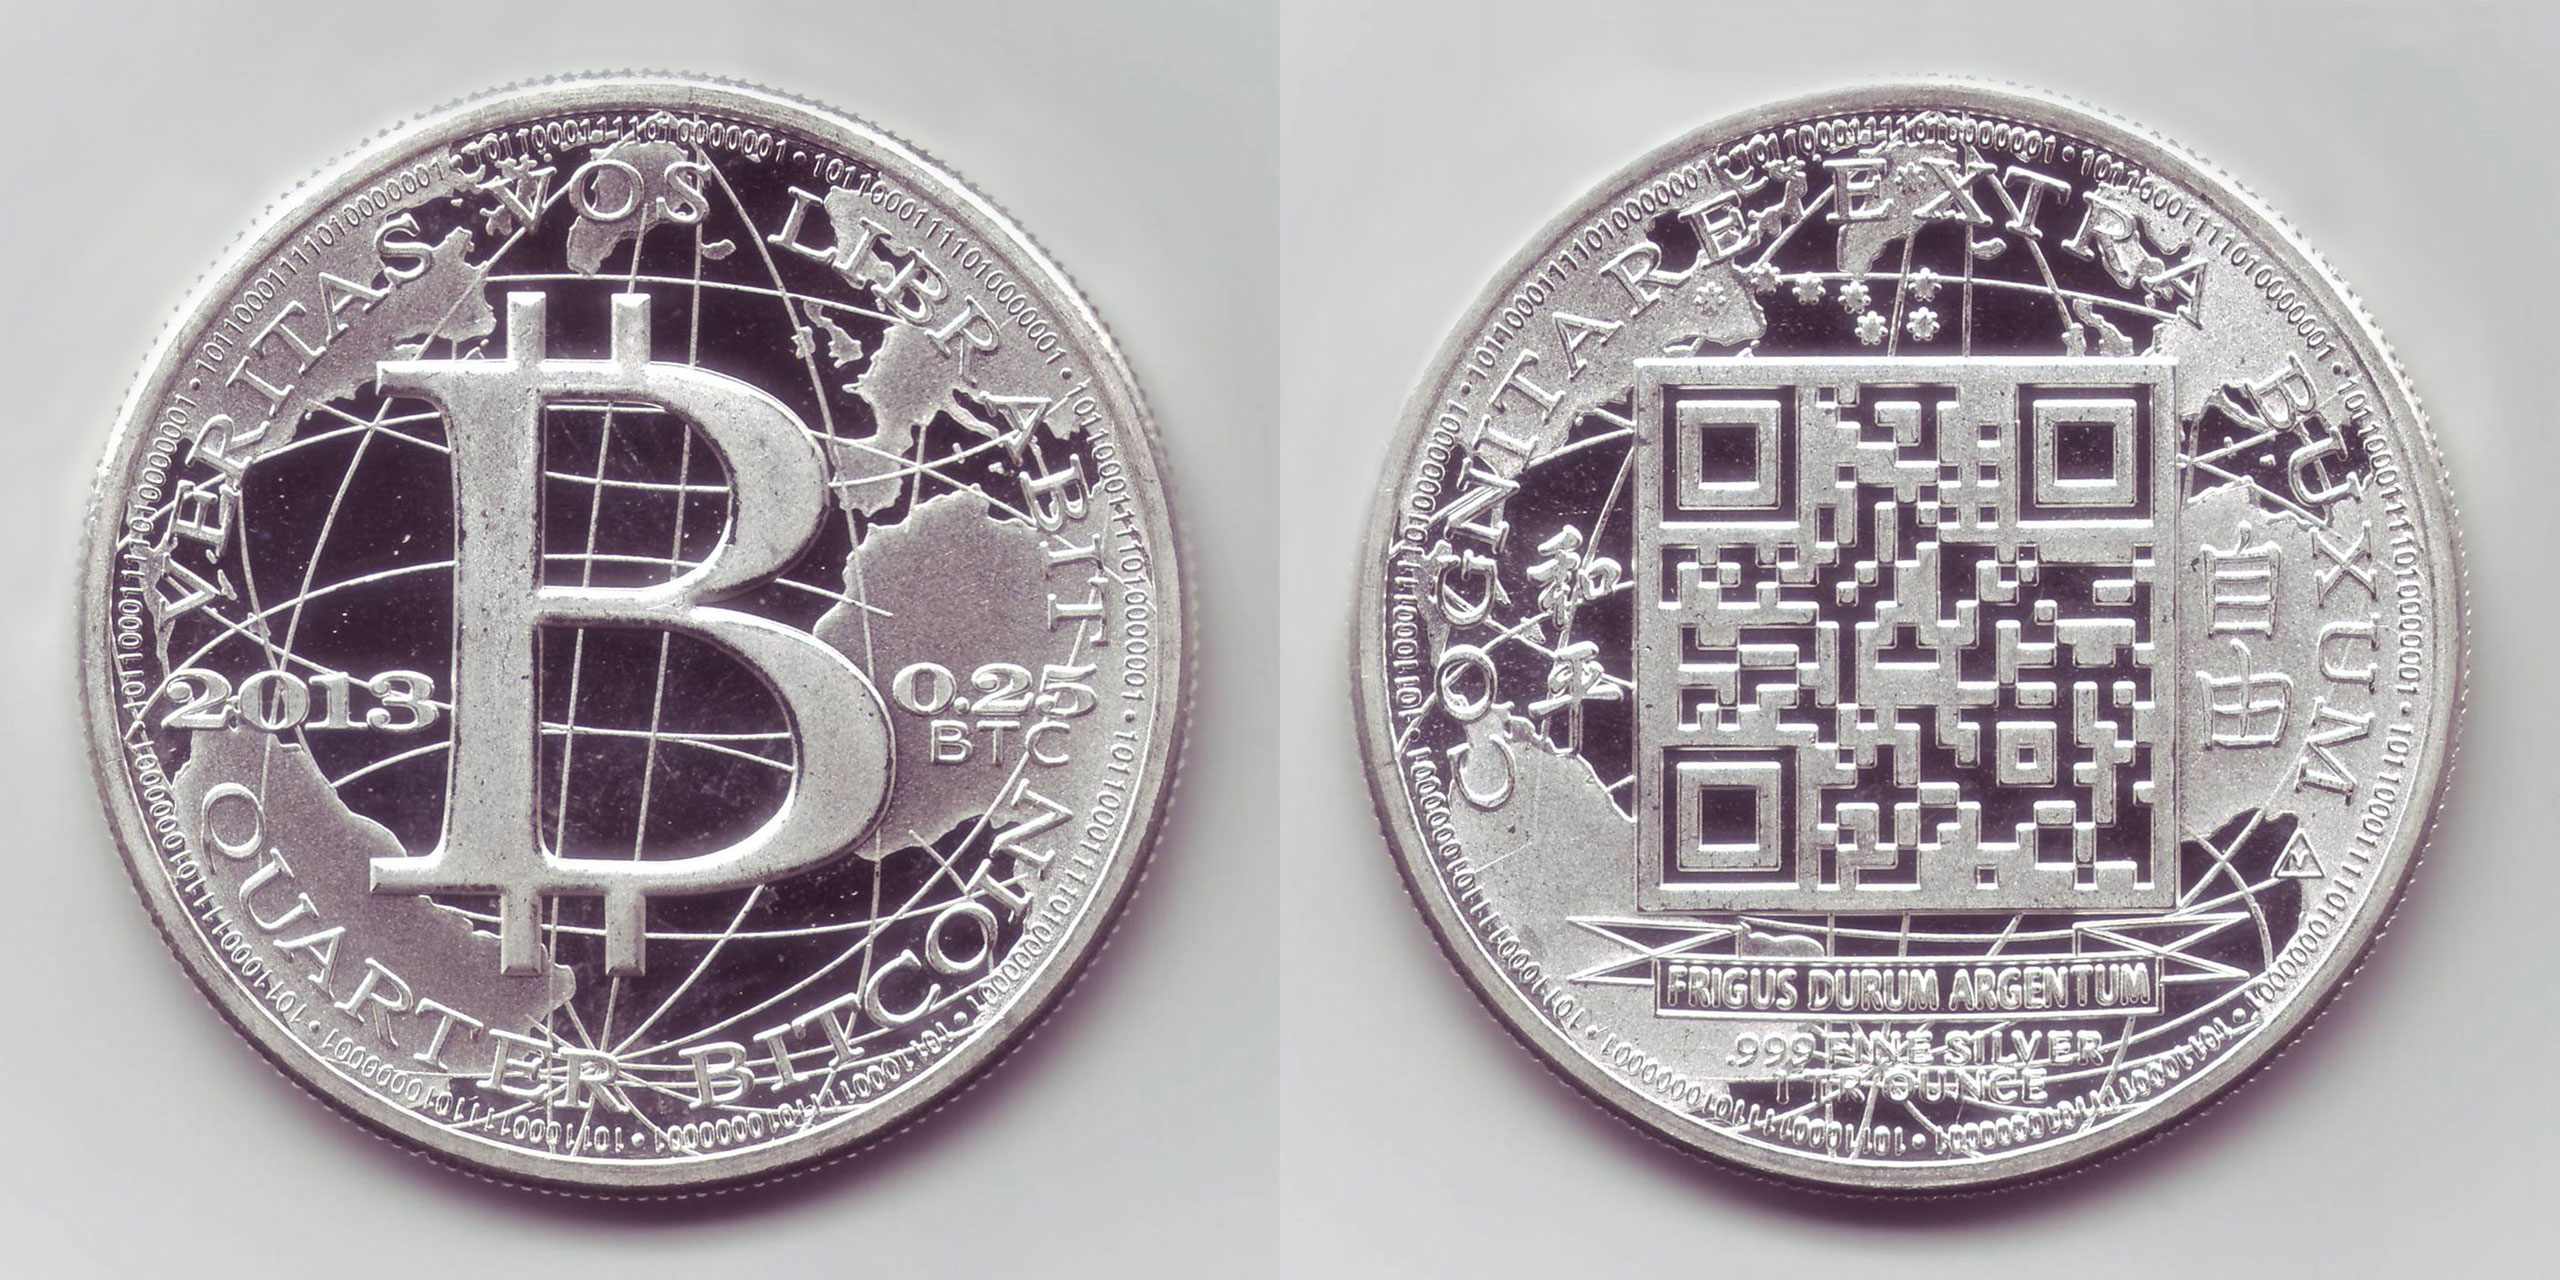 Unexpected shipping error refund from agora commodites introducing bitcoin silver specie coin ccuart Gallery